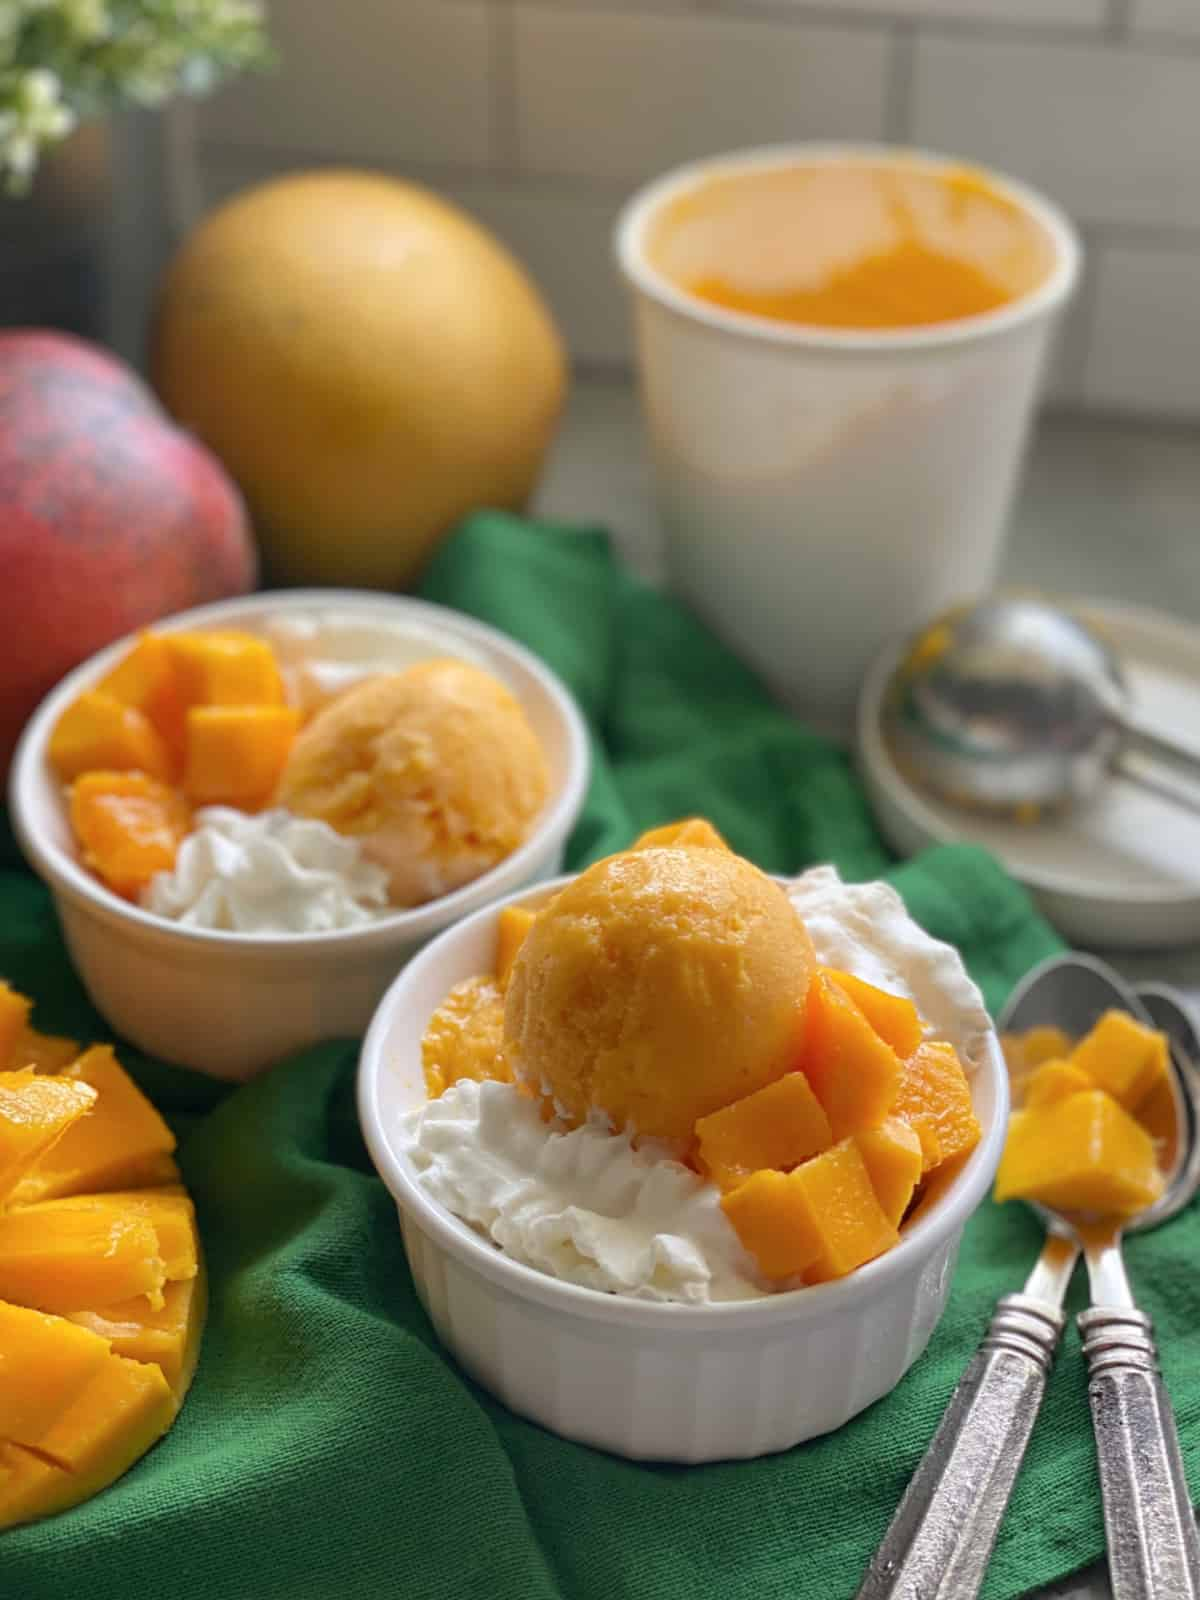 Two white bowls filled with Mango Frozen Yogurt on a green cloth with spoons and mangoes on the counter.